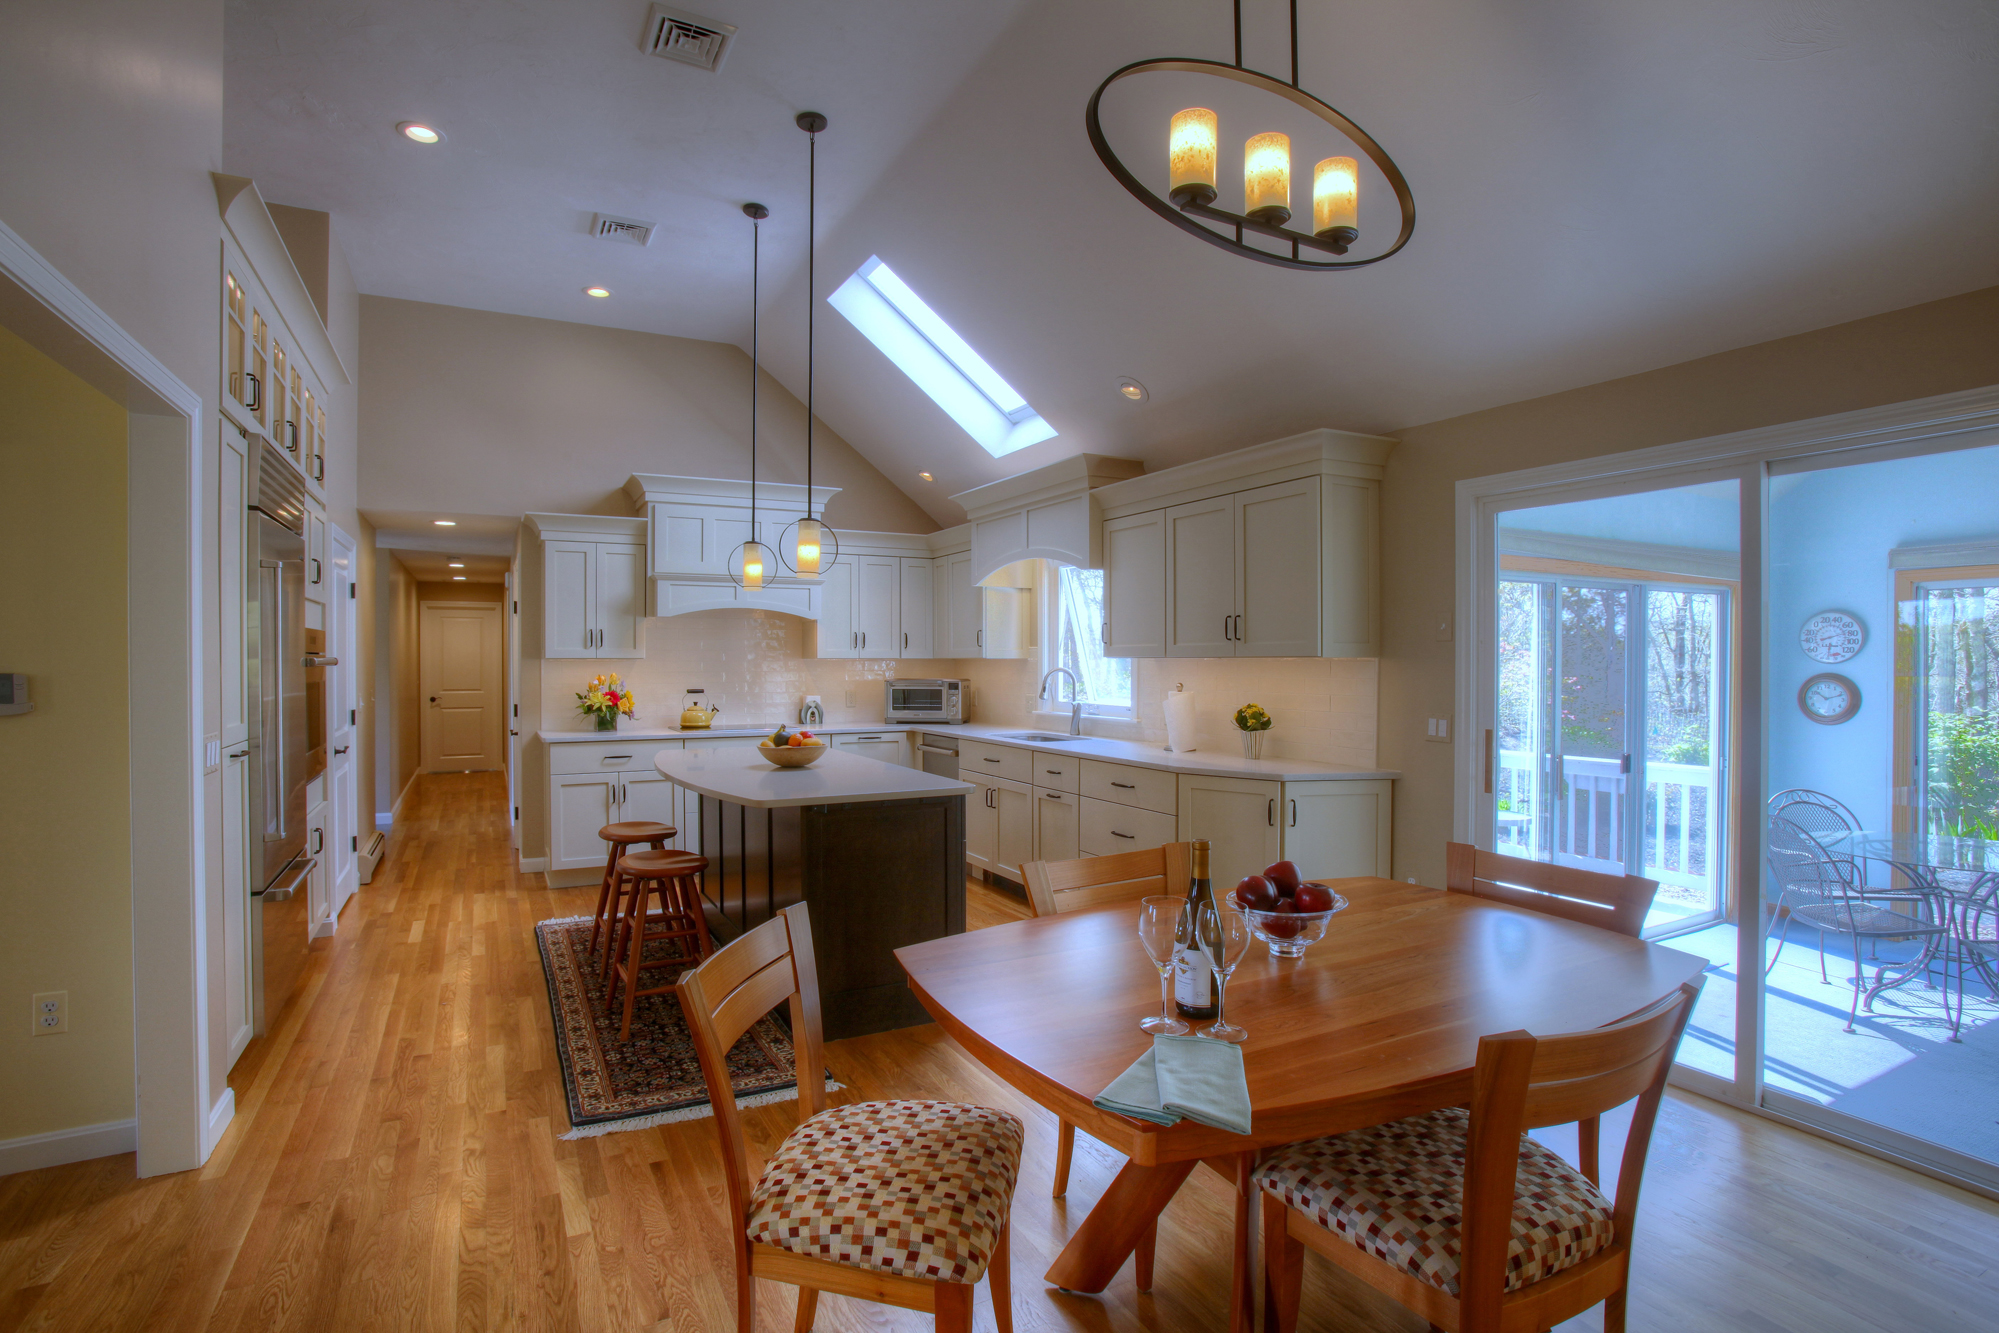 Kitchen Lighting Kitchen Lighting Design Jlc Online Lighting Lighting Design